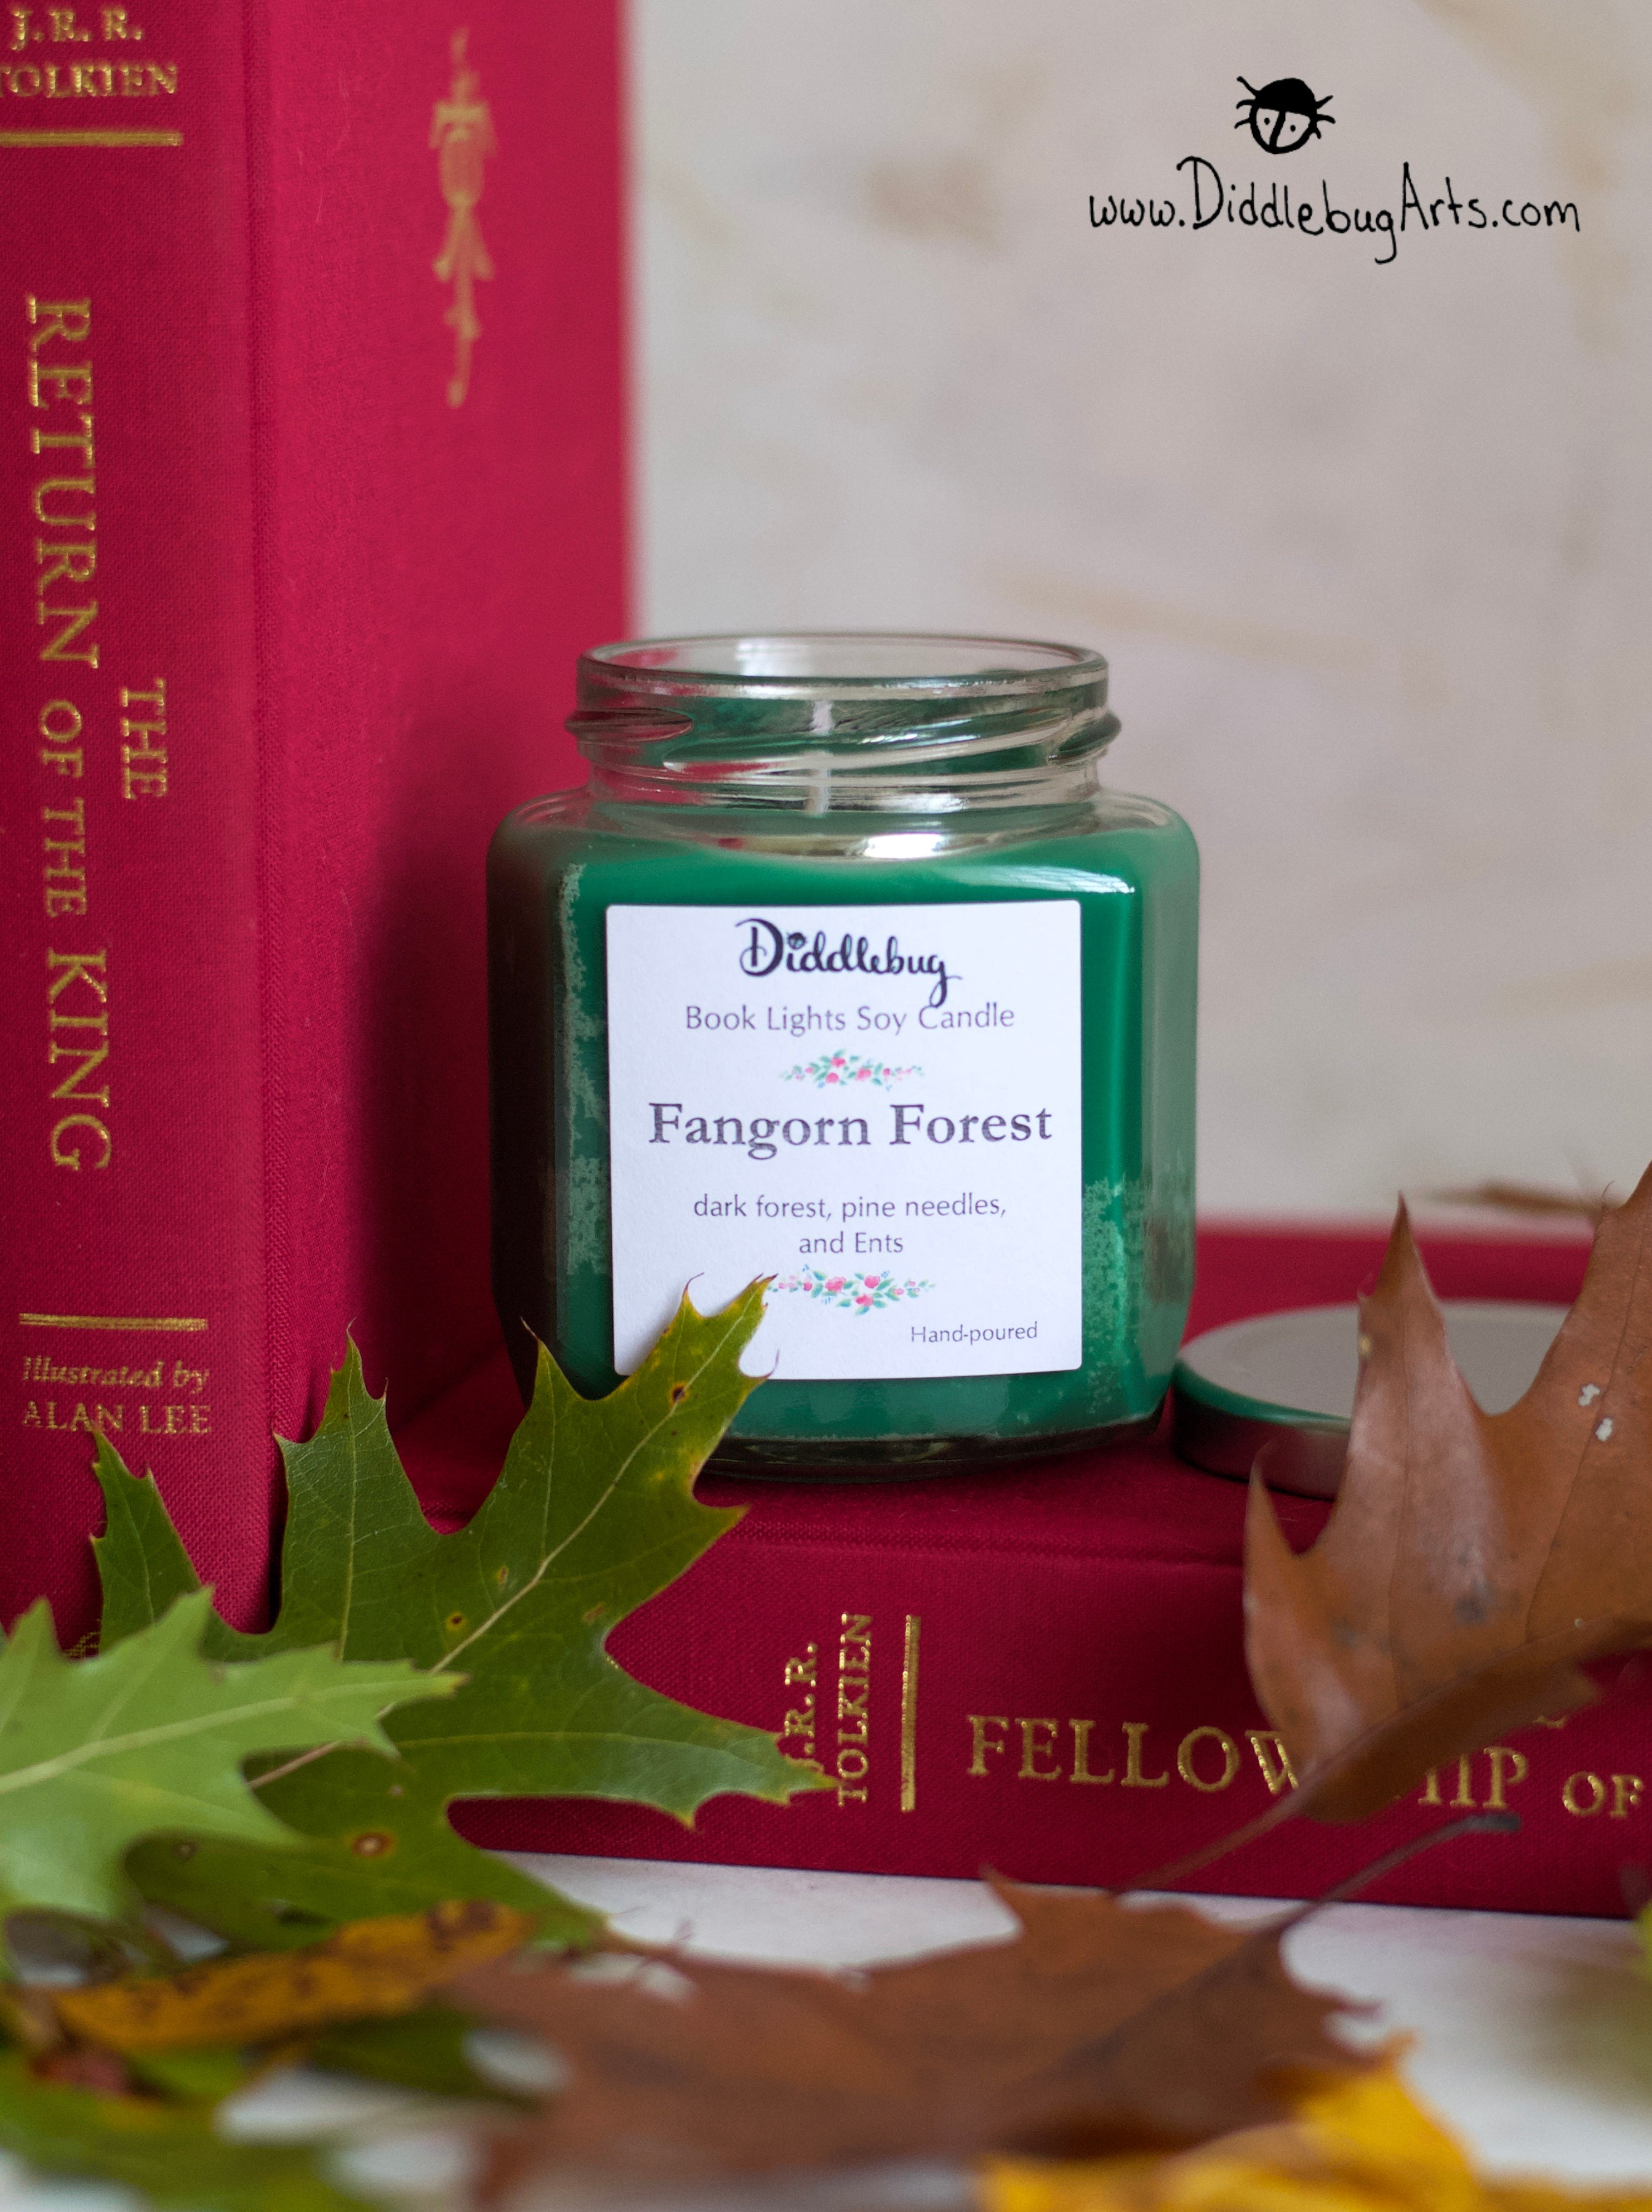 Hex glass fangorn forest soy candle